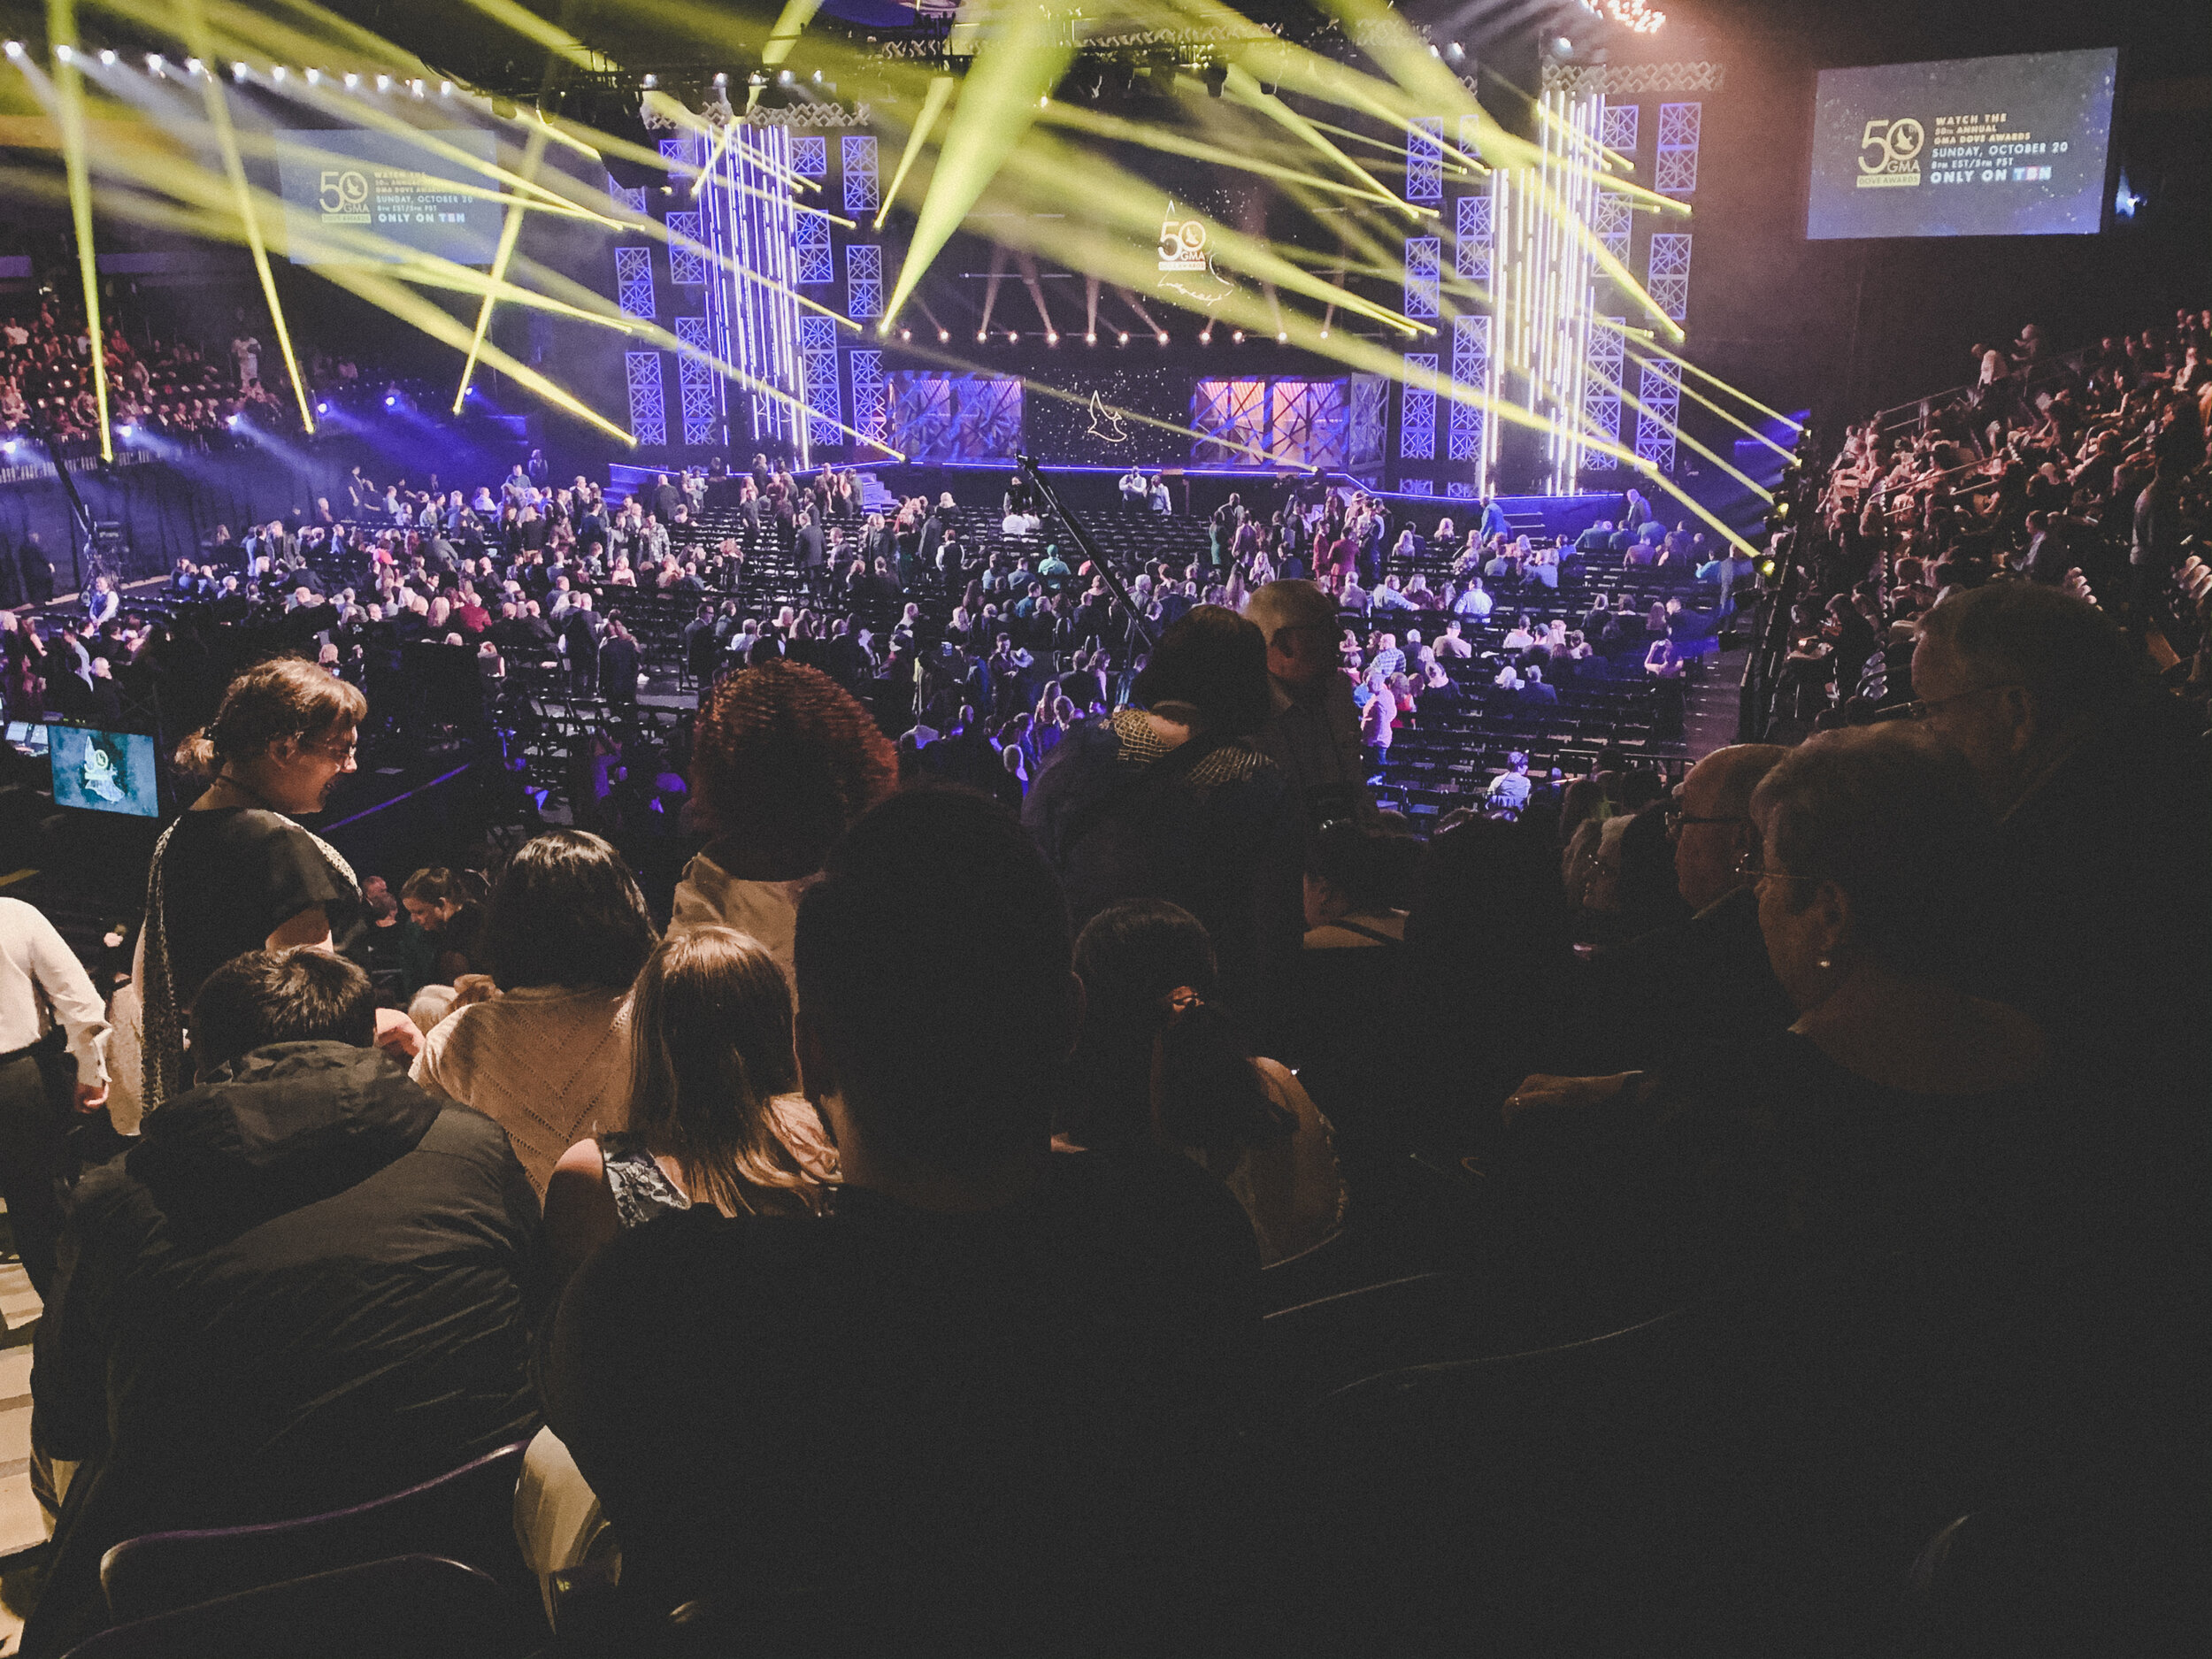 We made it to the 50th Annual Dove Awards!